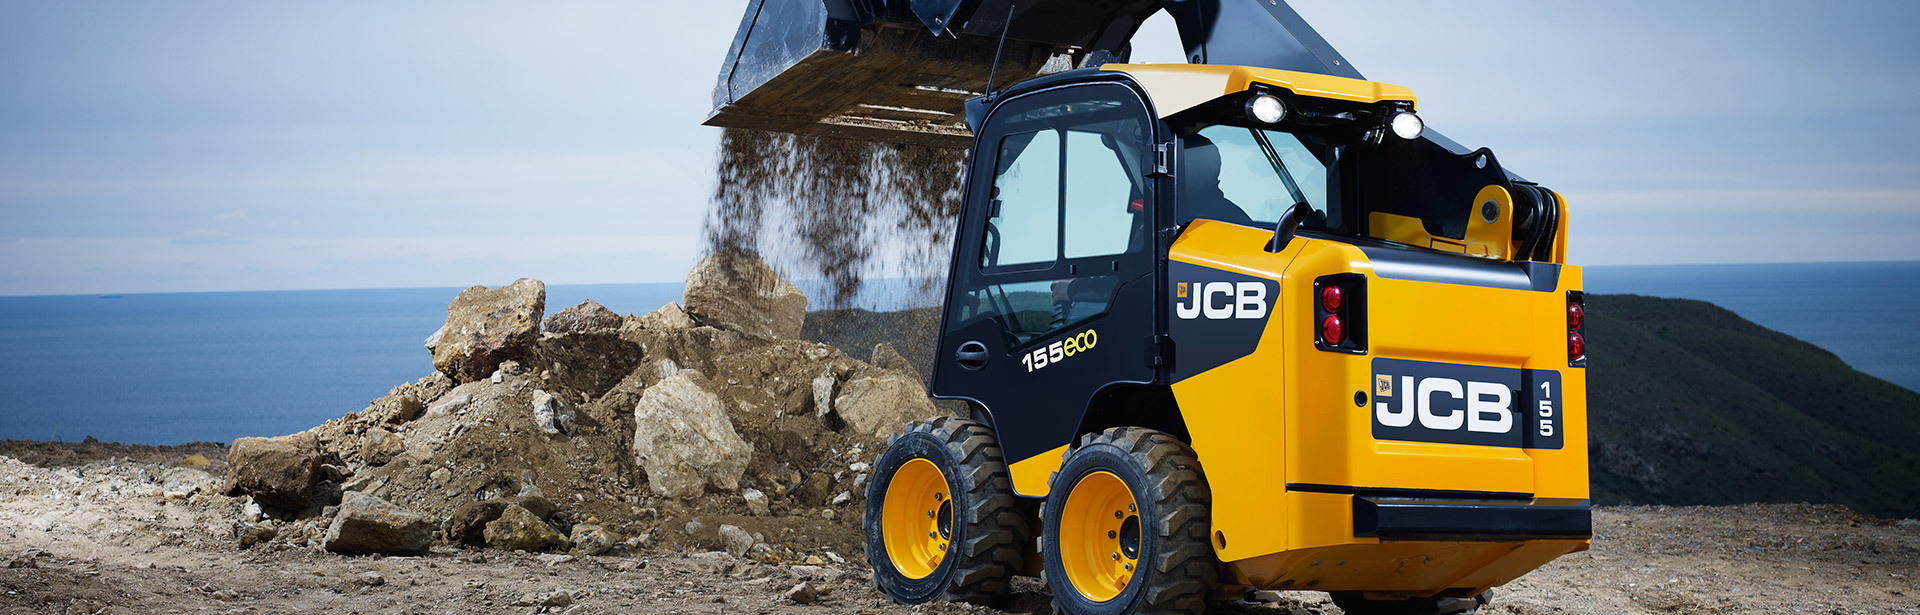 Image of a Skid Steer Loader